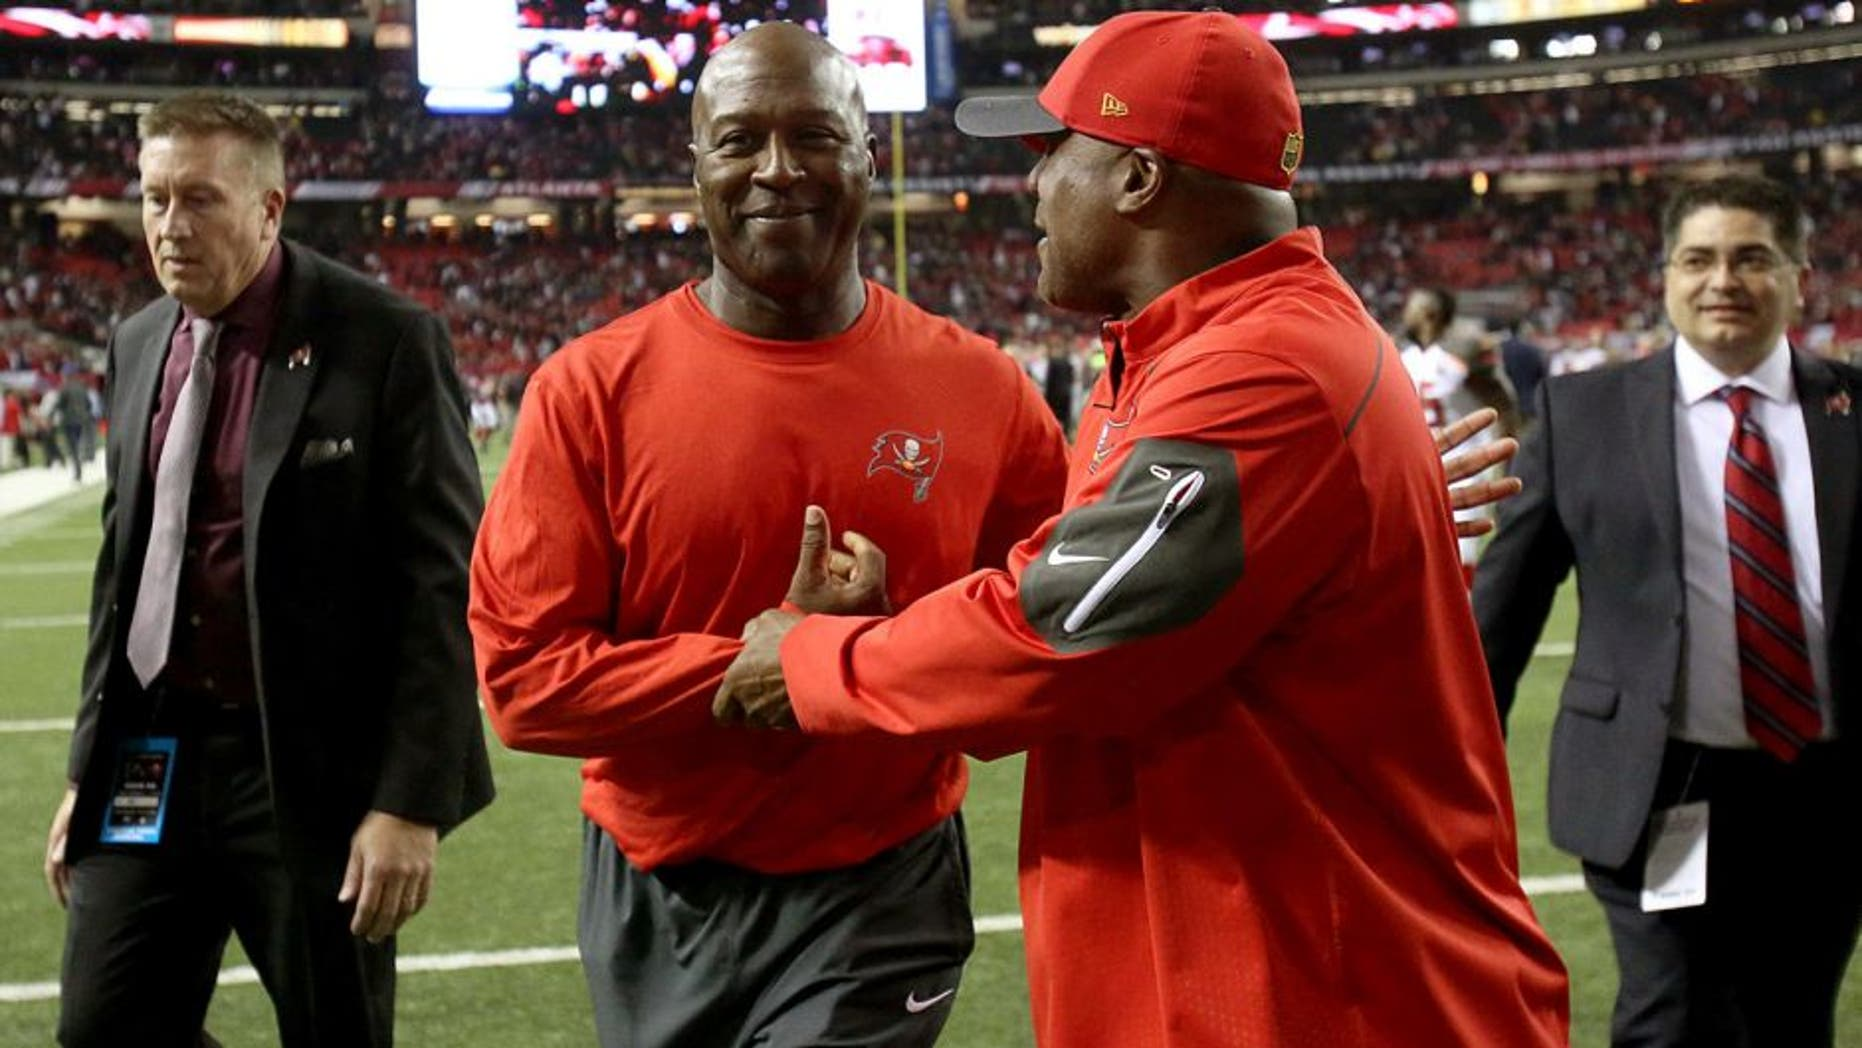 Nov 1, 2015; Atlanta, GA, USA; Tampa Bay Buccaneers head coach Lovie Smith, center, celebrates their win with cornerbacks coach Gill Byrd after their game against the Atlanta Falcons at the Georgia Dome. The Buccaneers won 23-20 in overtime. Mandatory Credit: Jason Getz-USA TODAY Sports